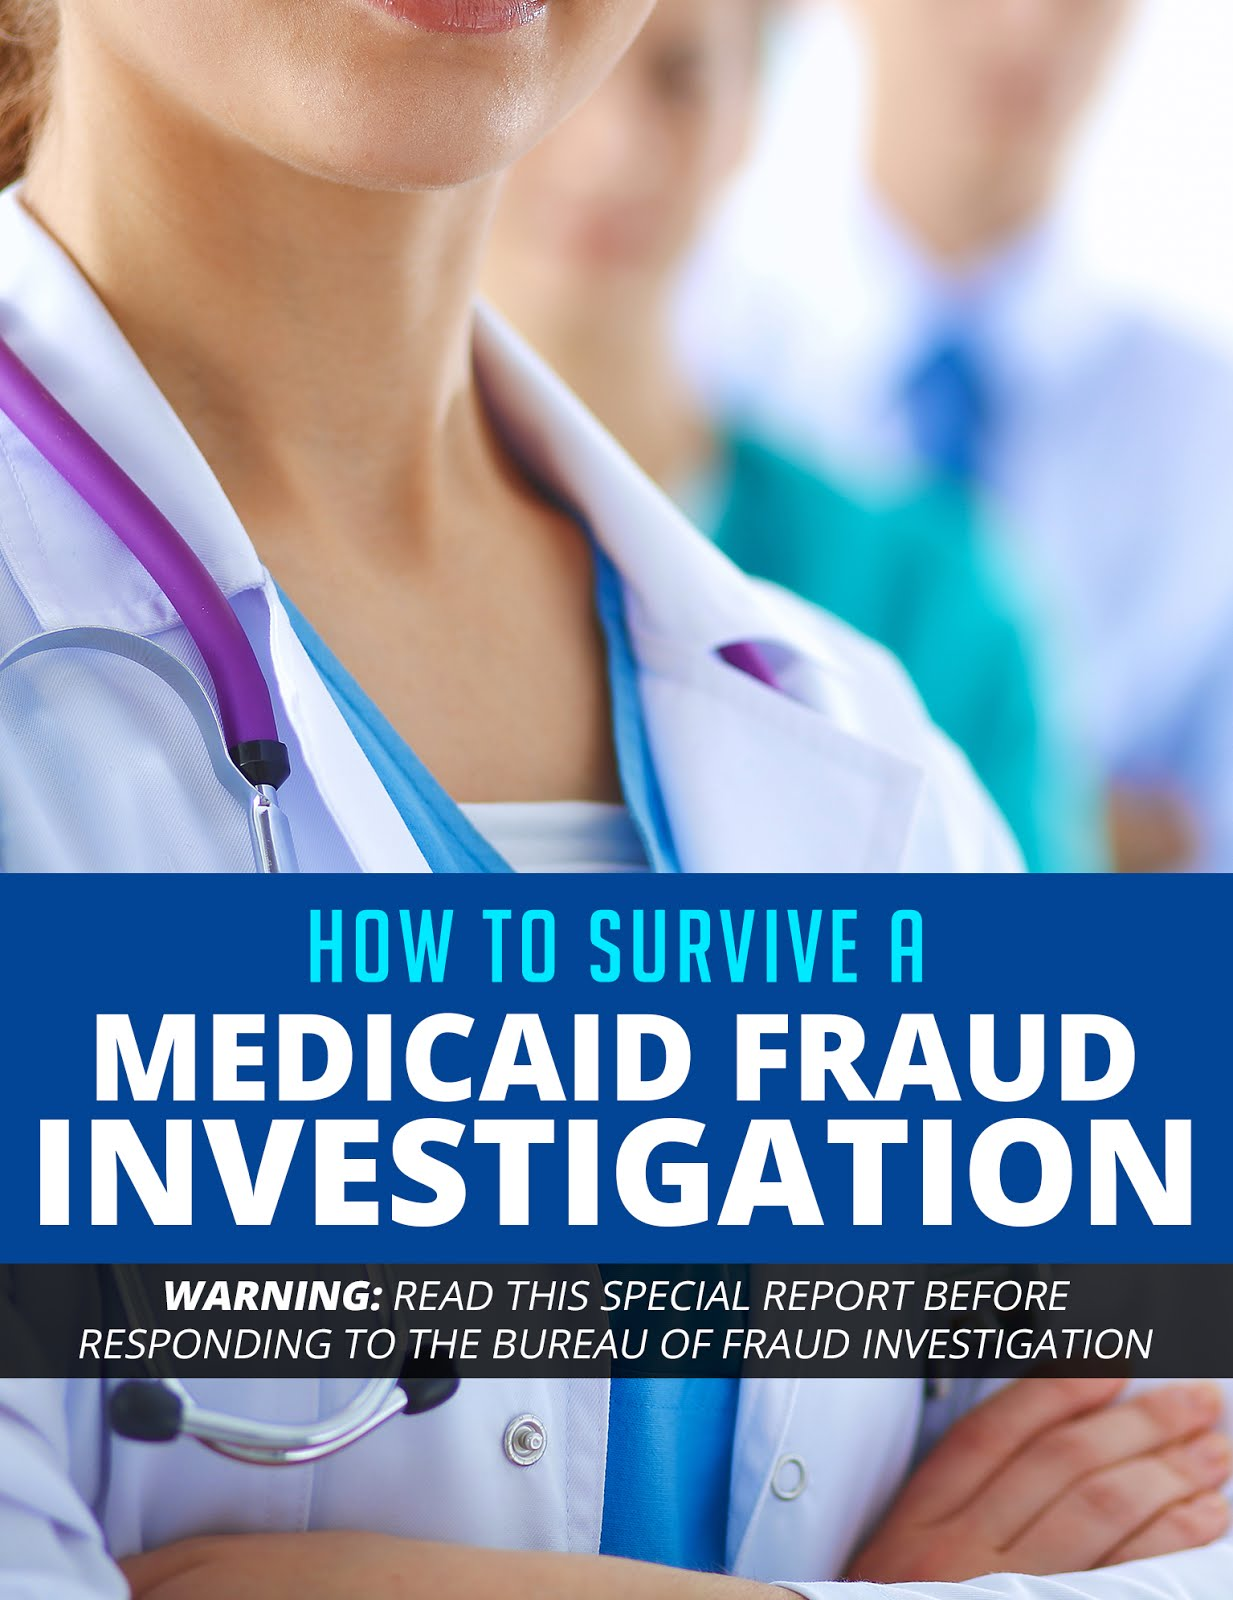 How To Survive A Medicaid Fraud Investigation